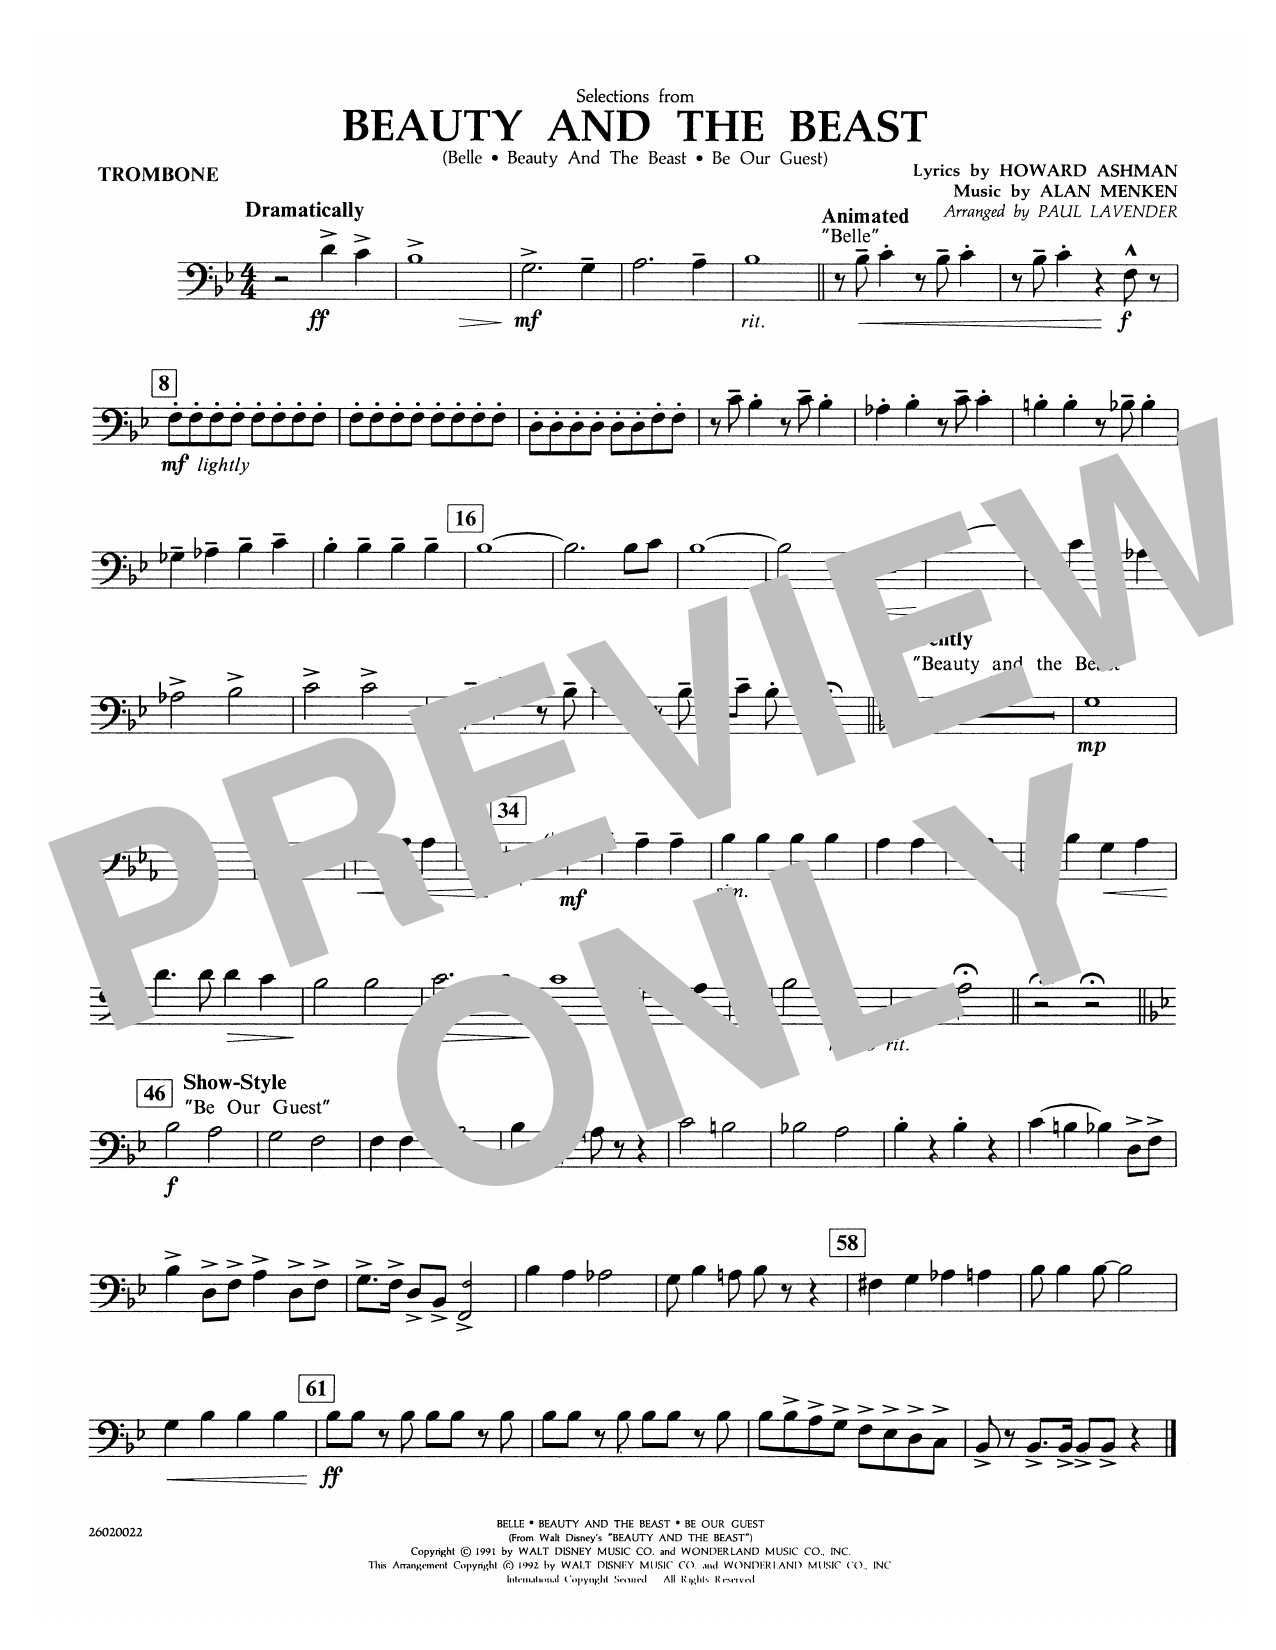 Paul Lavender Selections from Beauty and the Beast - Trombone sheet music notes and chords. Download Printable PDF.